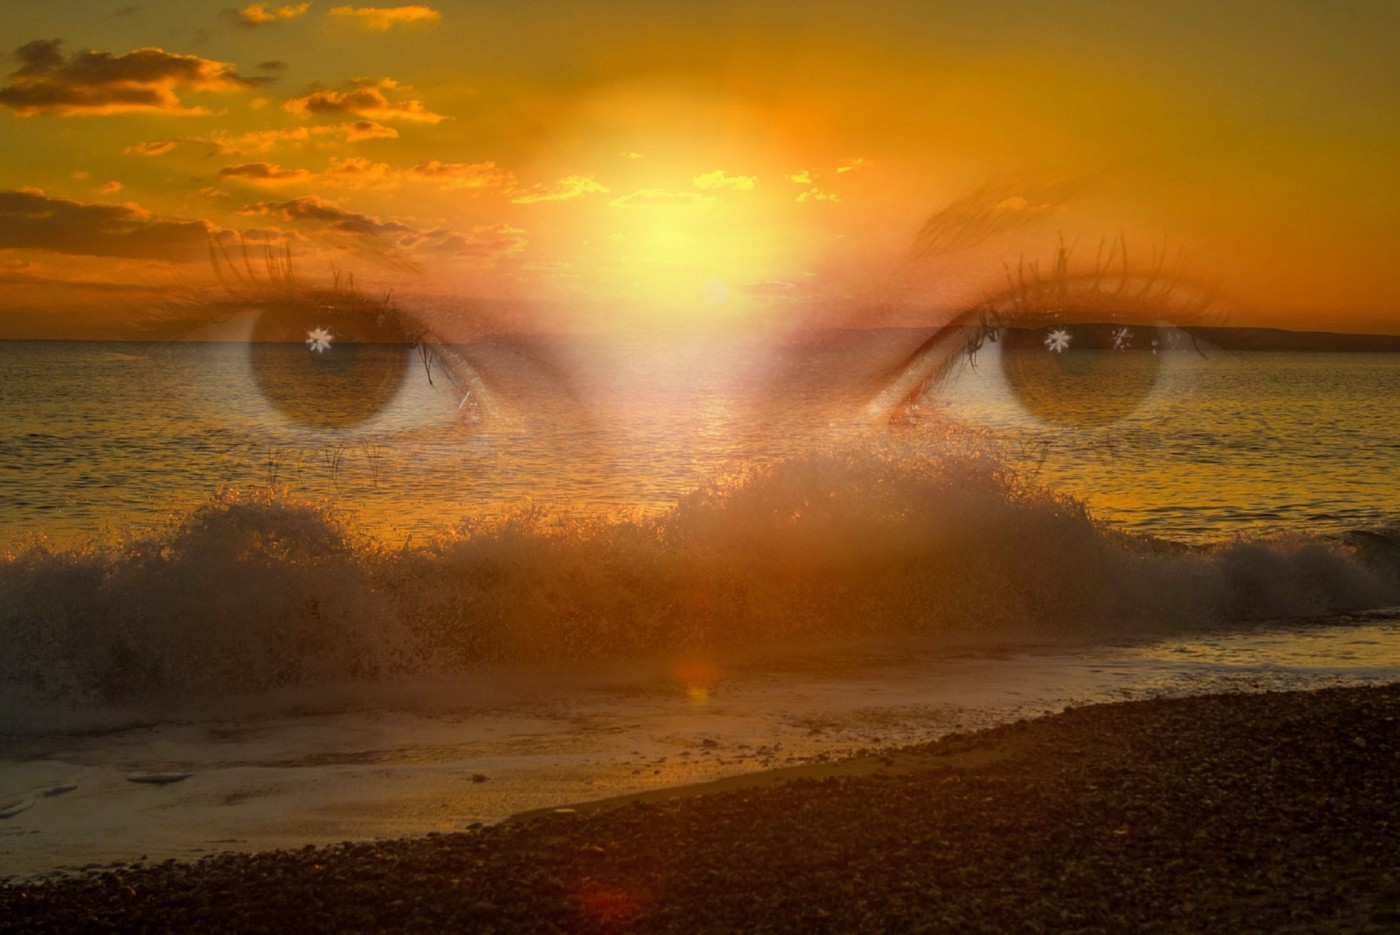 Awareness or presence: Staring eyes superimposed over ocean waves